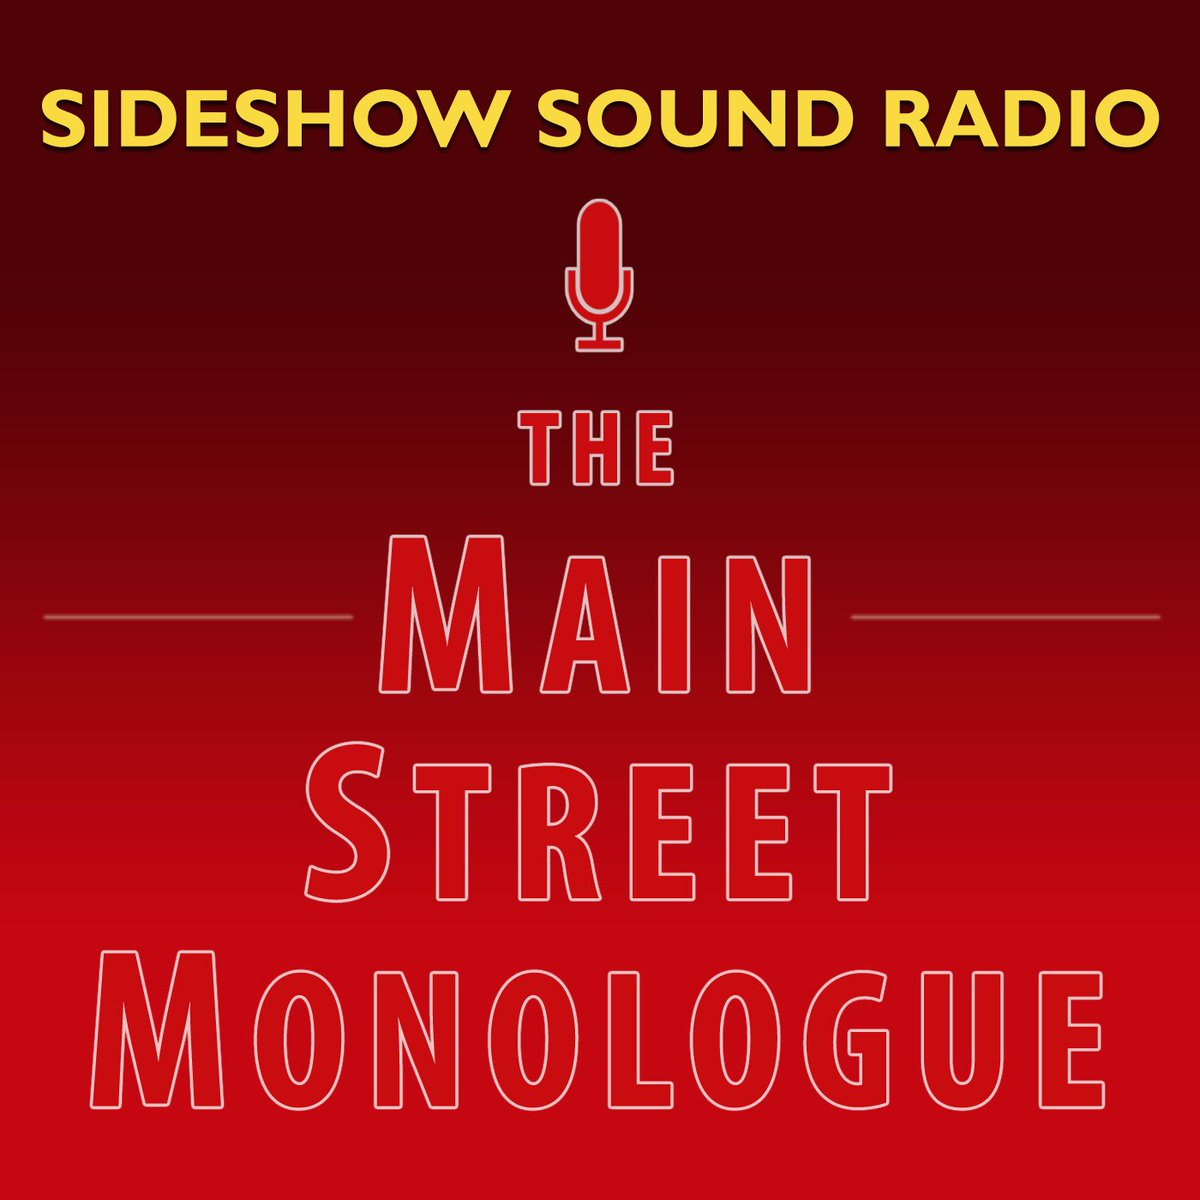 NEW EPISODE! #TheMainStreetMonologue  Score: A Celebration of Oscar-Worthy Mouse Music    http:// bit.ly/MainStreetMono logue12 &nbsp; …   In Episode 12, hosts @Will_Dodson1 &amp; @ToddHoran discuss yes, that #aladdintrailer #Frozen2 and the music nominations for the #Oscars2019   Enjoy the show! <br>http://pic.twitter.com/NY9FgdWATV